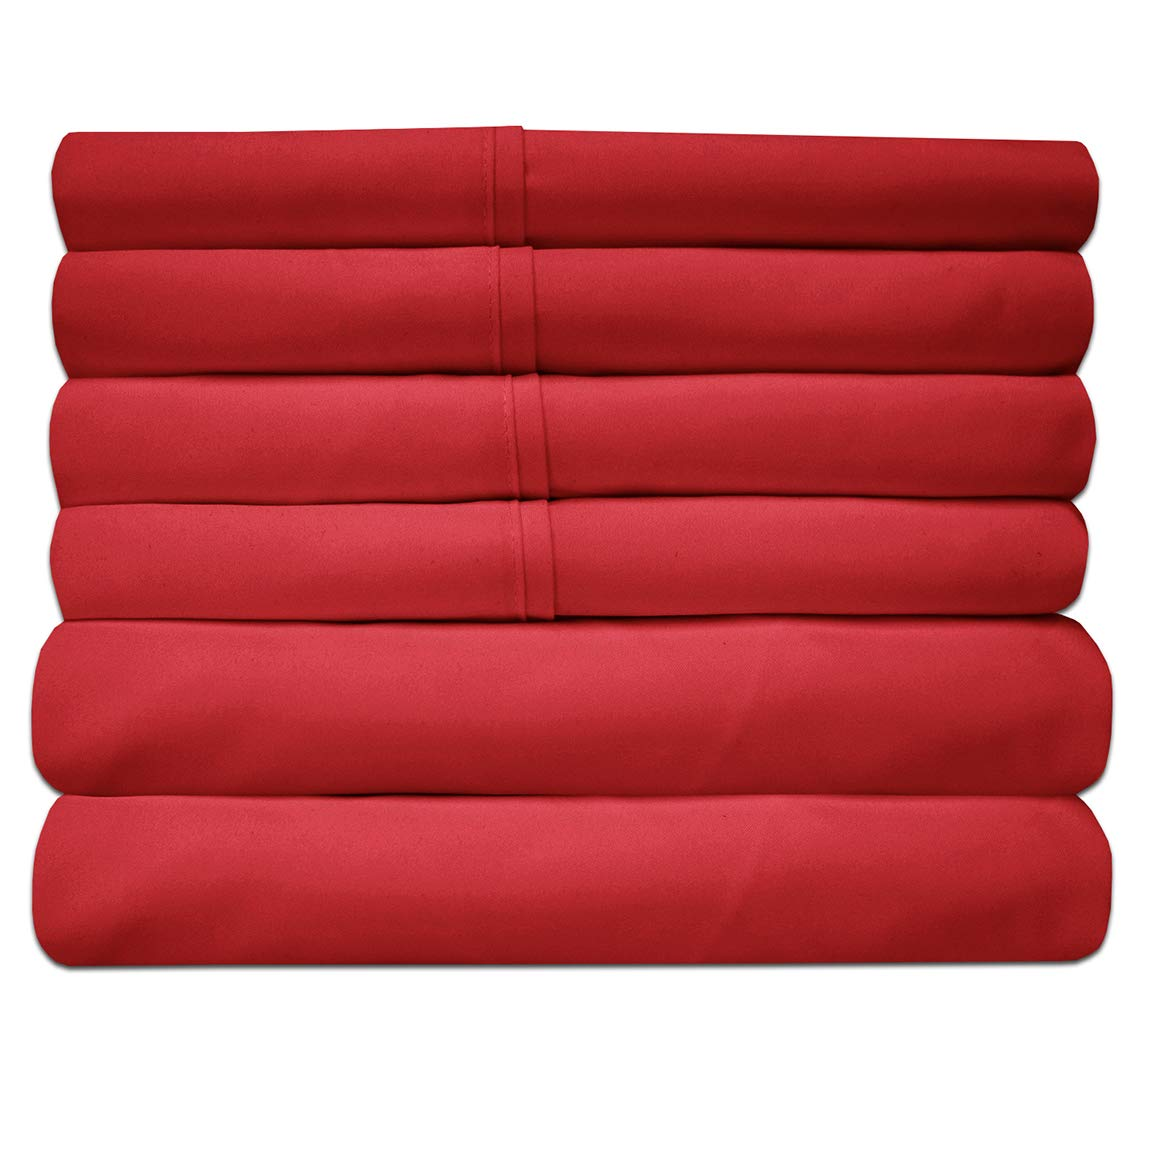 Sweet Home Collection King Size Bed Sheets-6 Piece 1500 Thread Count Fine Brushed Microfiber Deep Pocket Set-2 EXTRA PILLOW CASES, VALUE, Samba Red